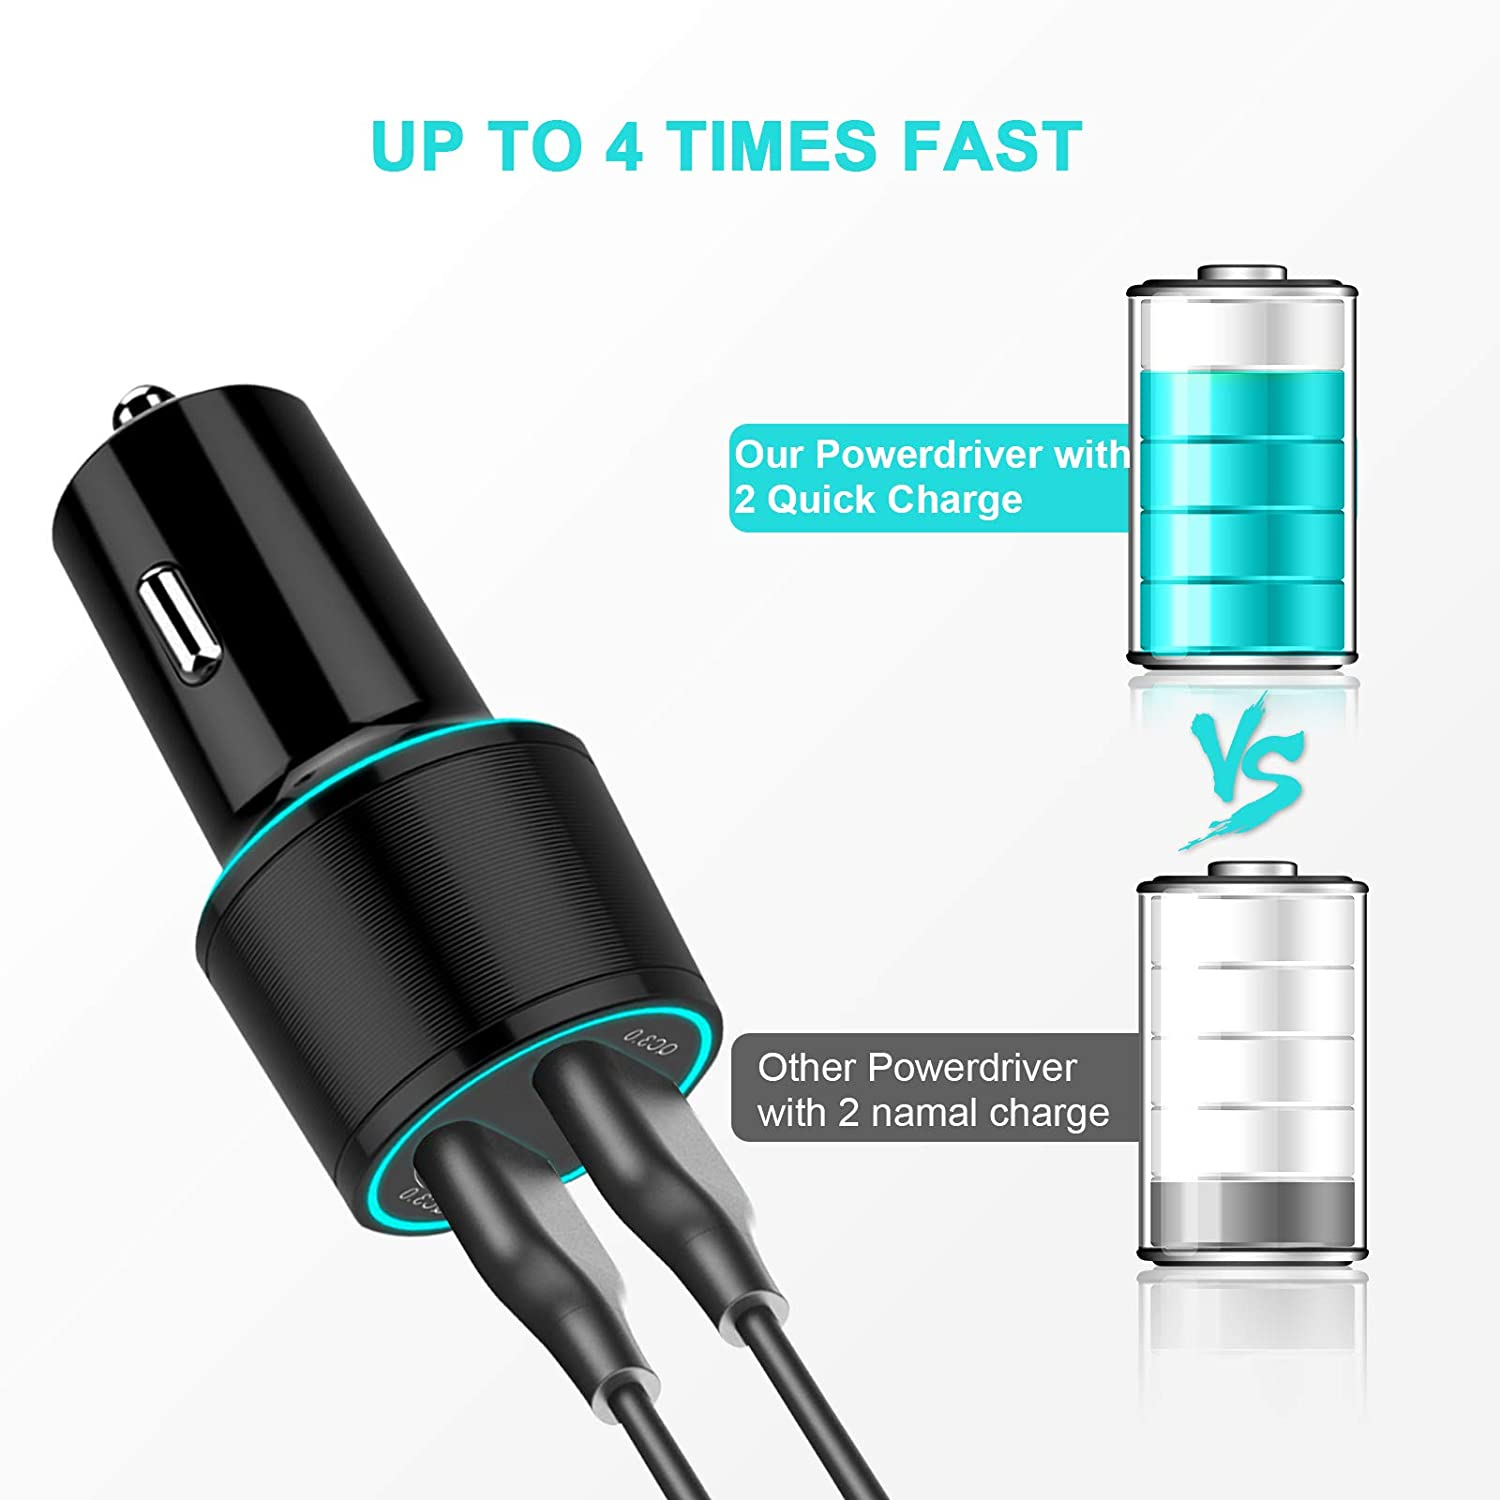 iPad Pro//Air//Mini,etc for Fast charging up to 6A All Metal Car Charger Compatible with iPhone 11//11 pro//XR//X//XS//8 USB Car Charger QC 3.0 Dual USB Port Car Charger Adapter Samsung Note 8//S9//S10+//S8